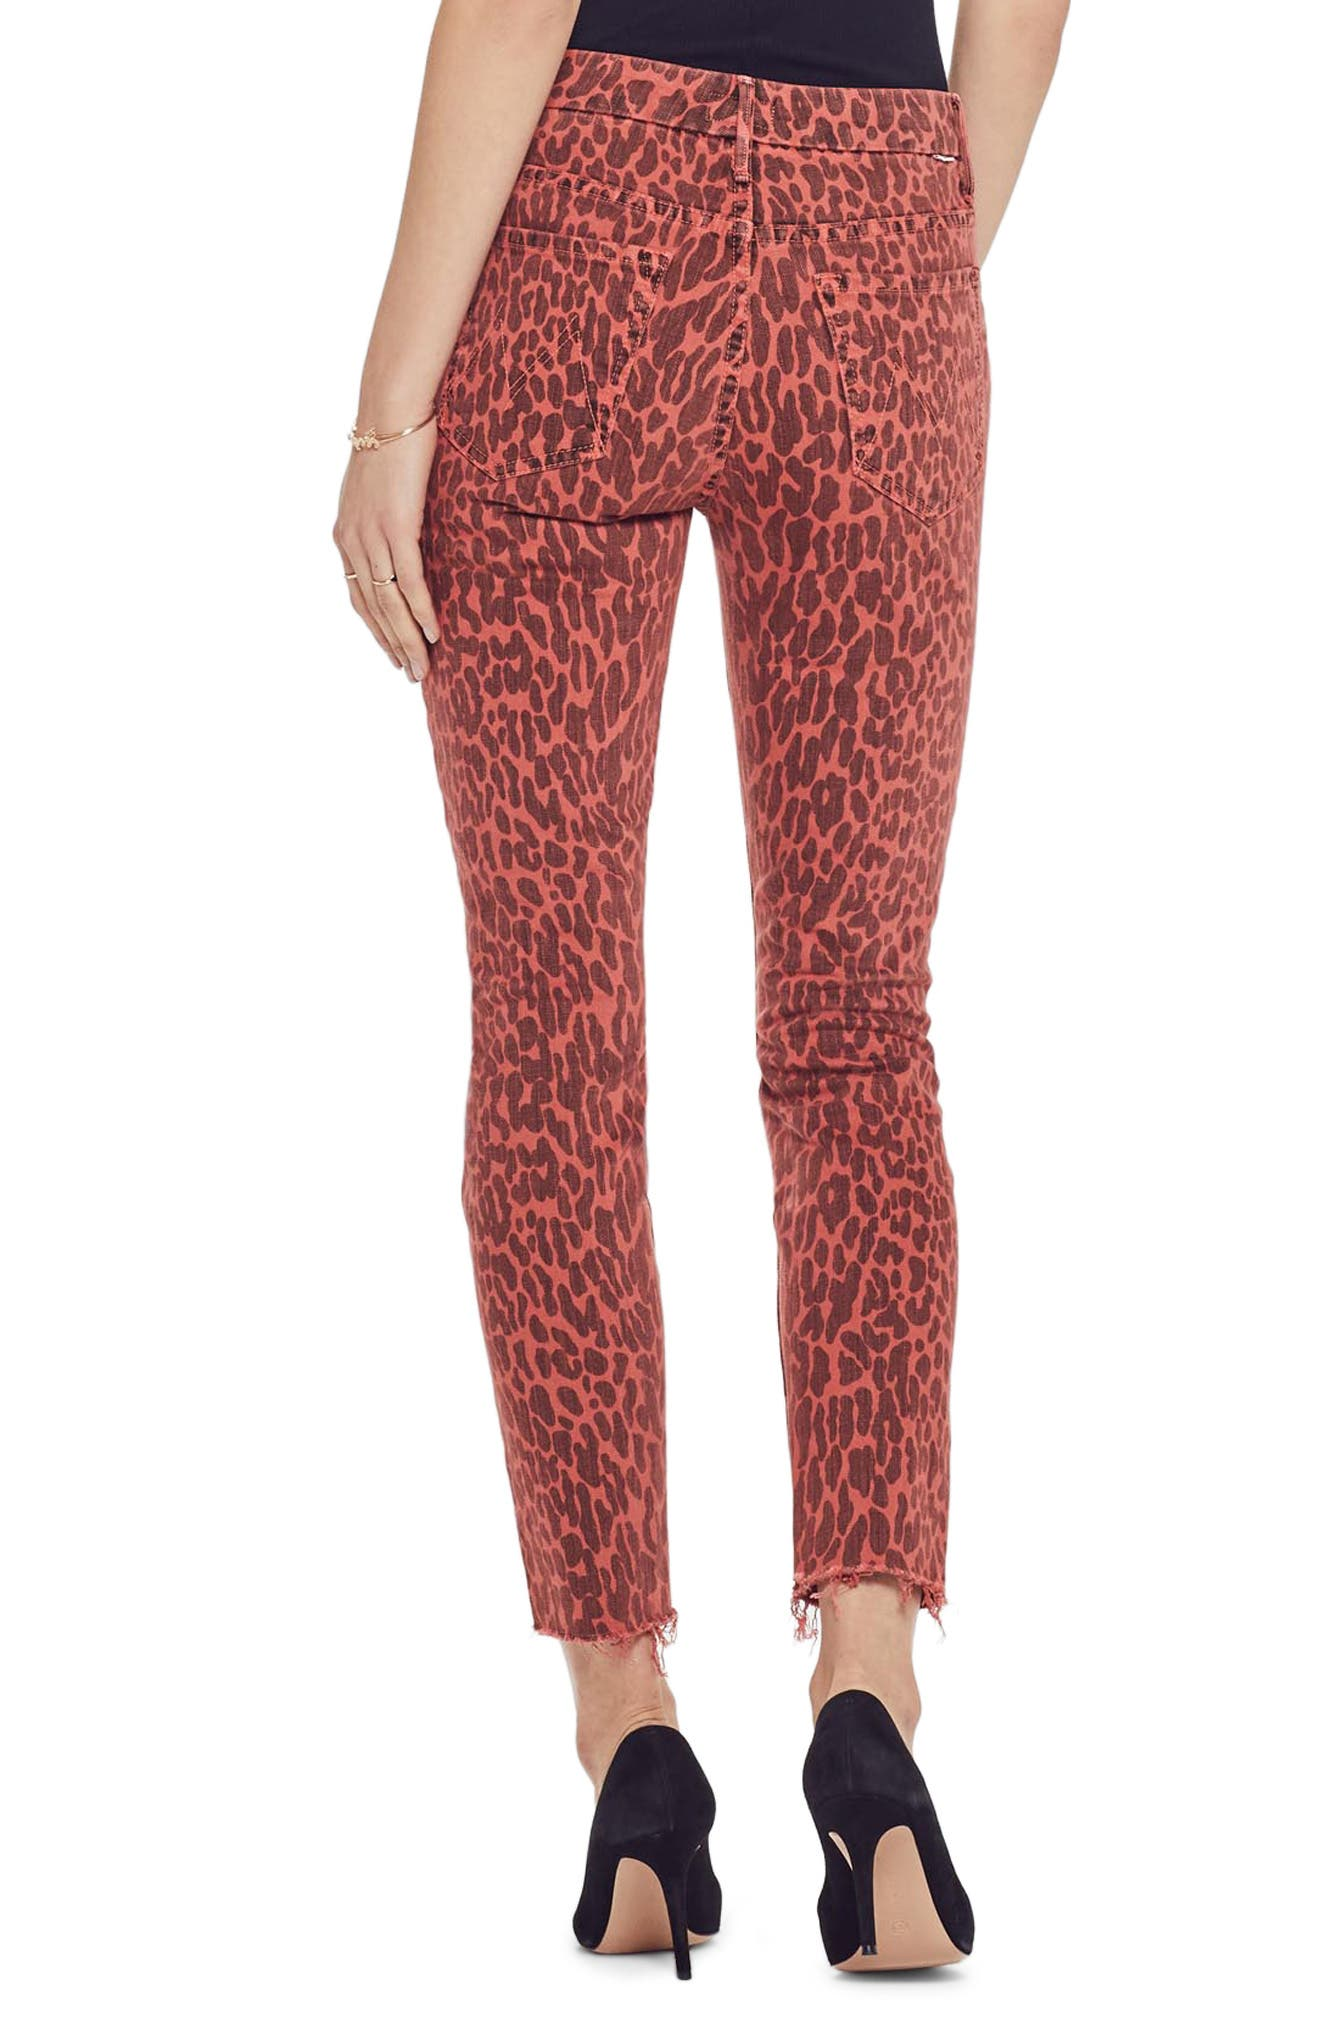 MOTHER, The Looker High Waist Fray Ankle Skinny Jeans, Alternate thumbnail 2, color, ANIMAL ATTRACTION